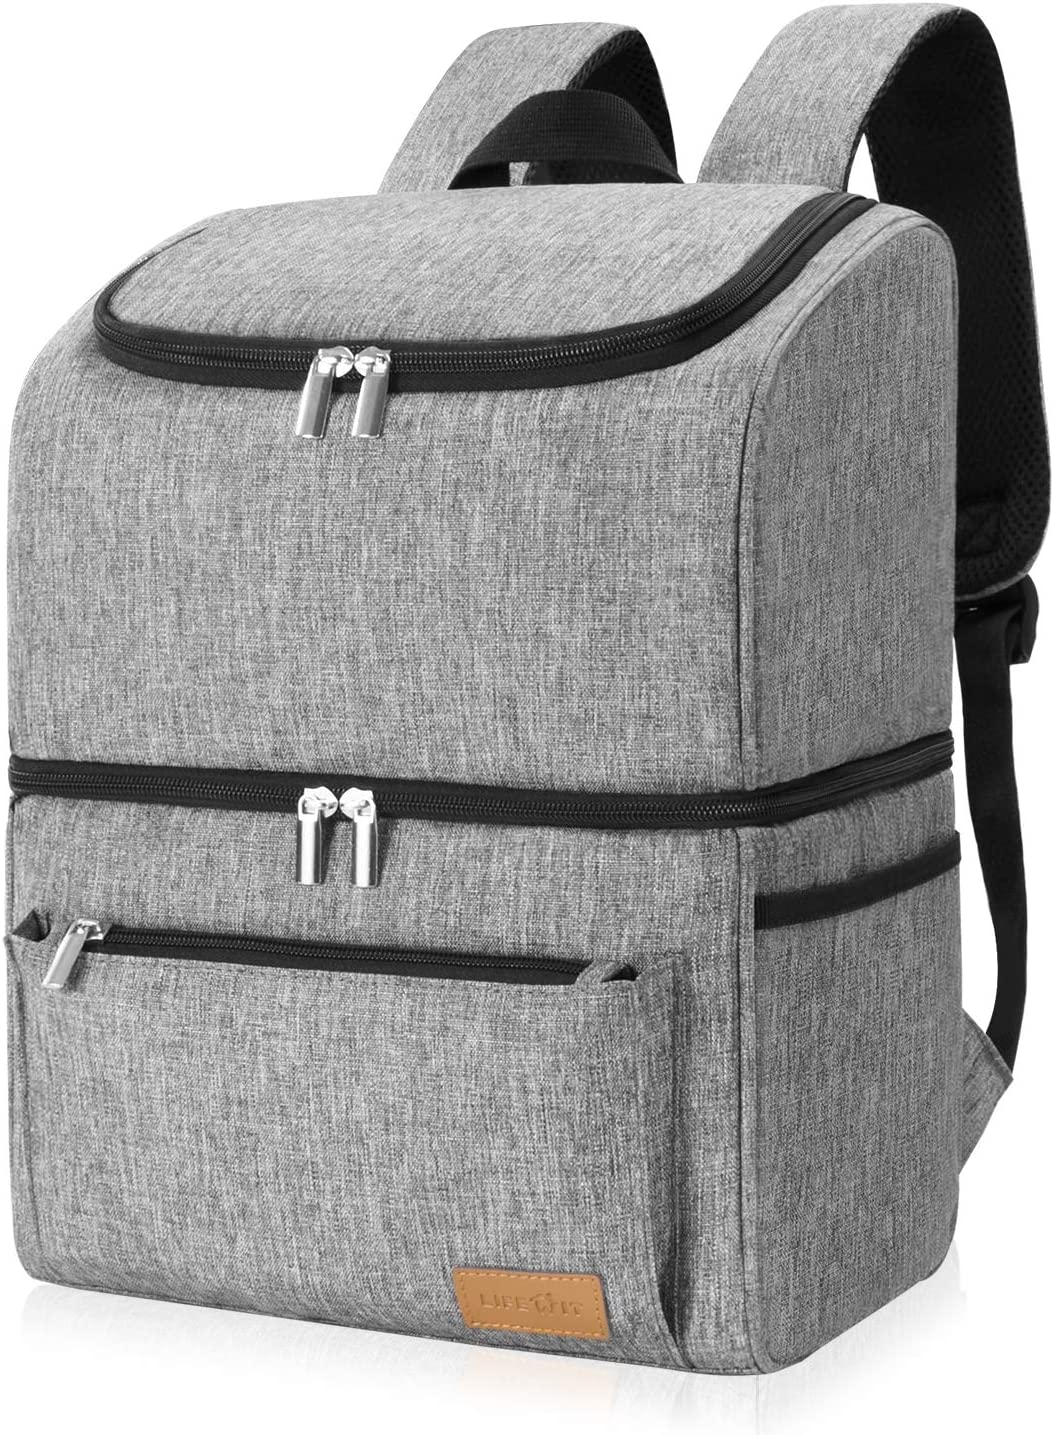 Lifewit Cooler Backpack